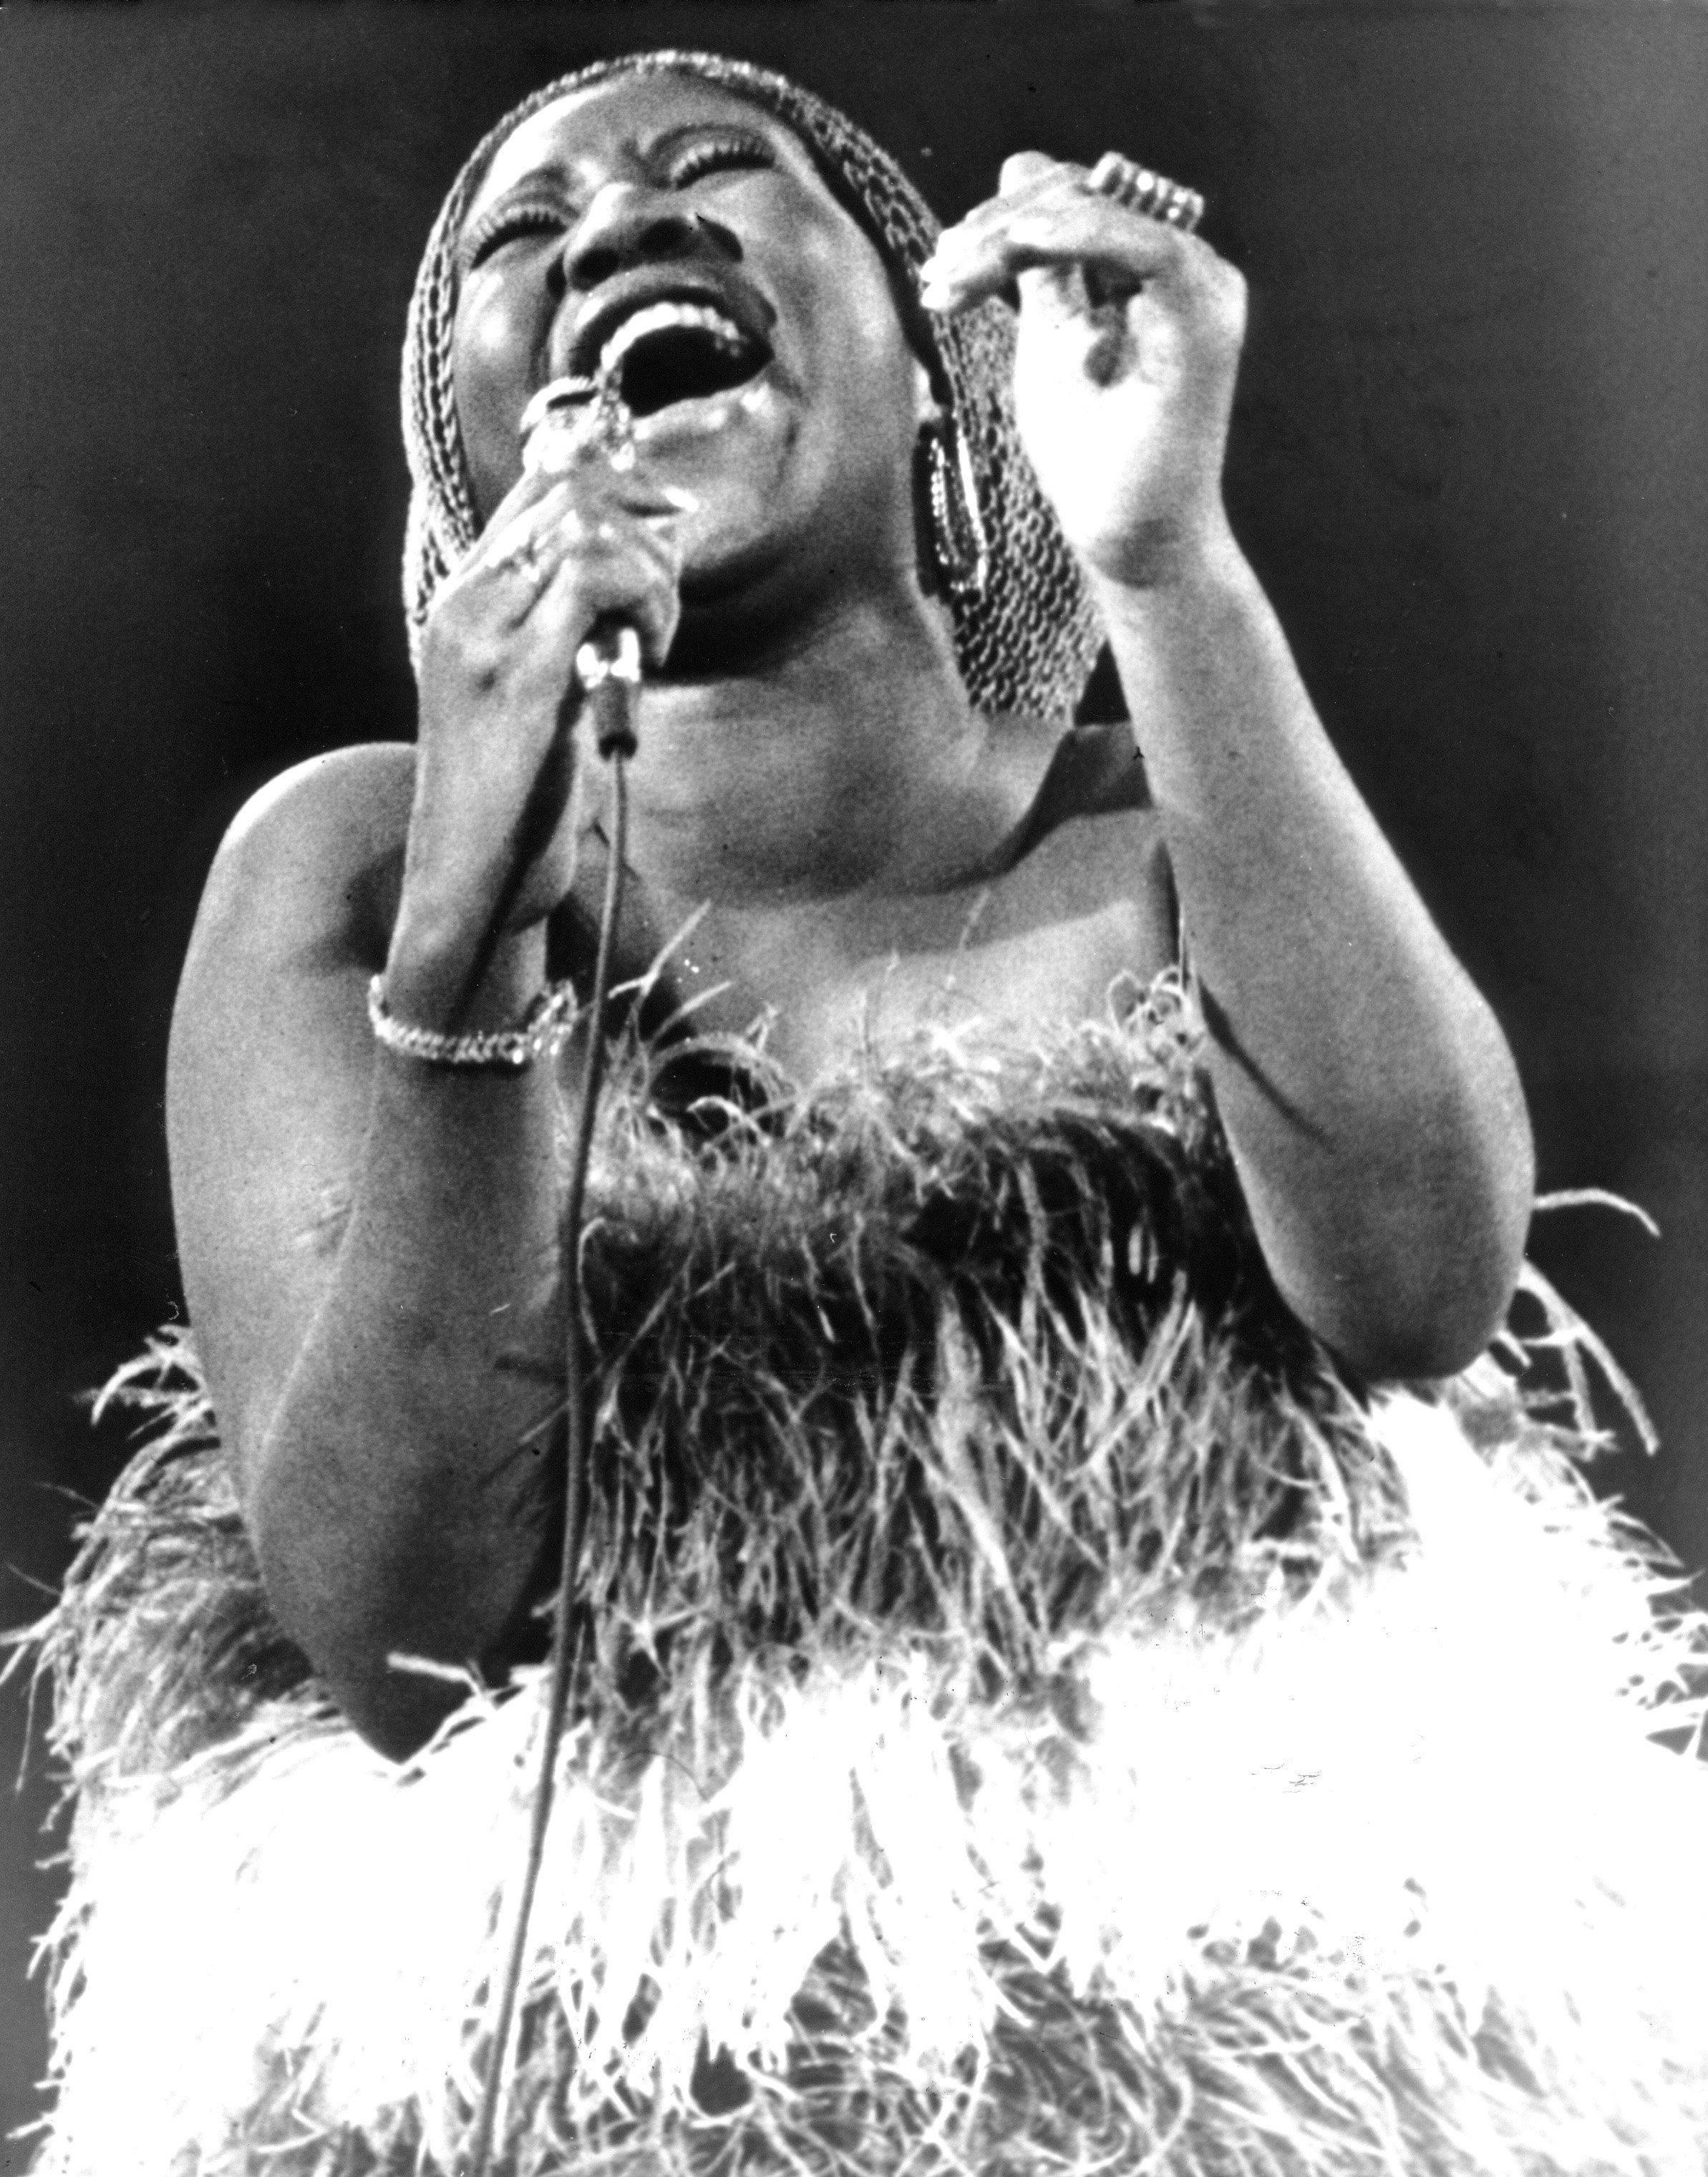 31 Photos To Commemorate Aretha Franklin's Life And